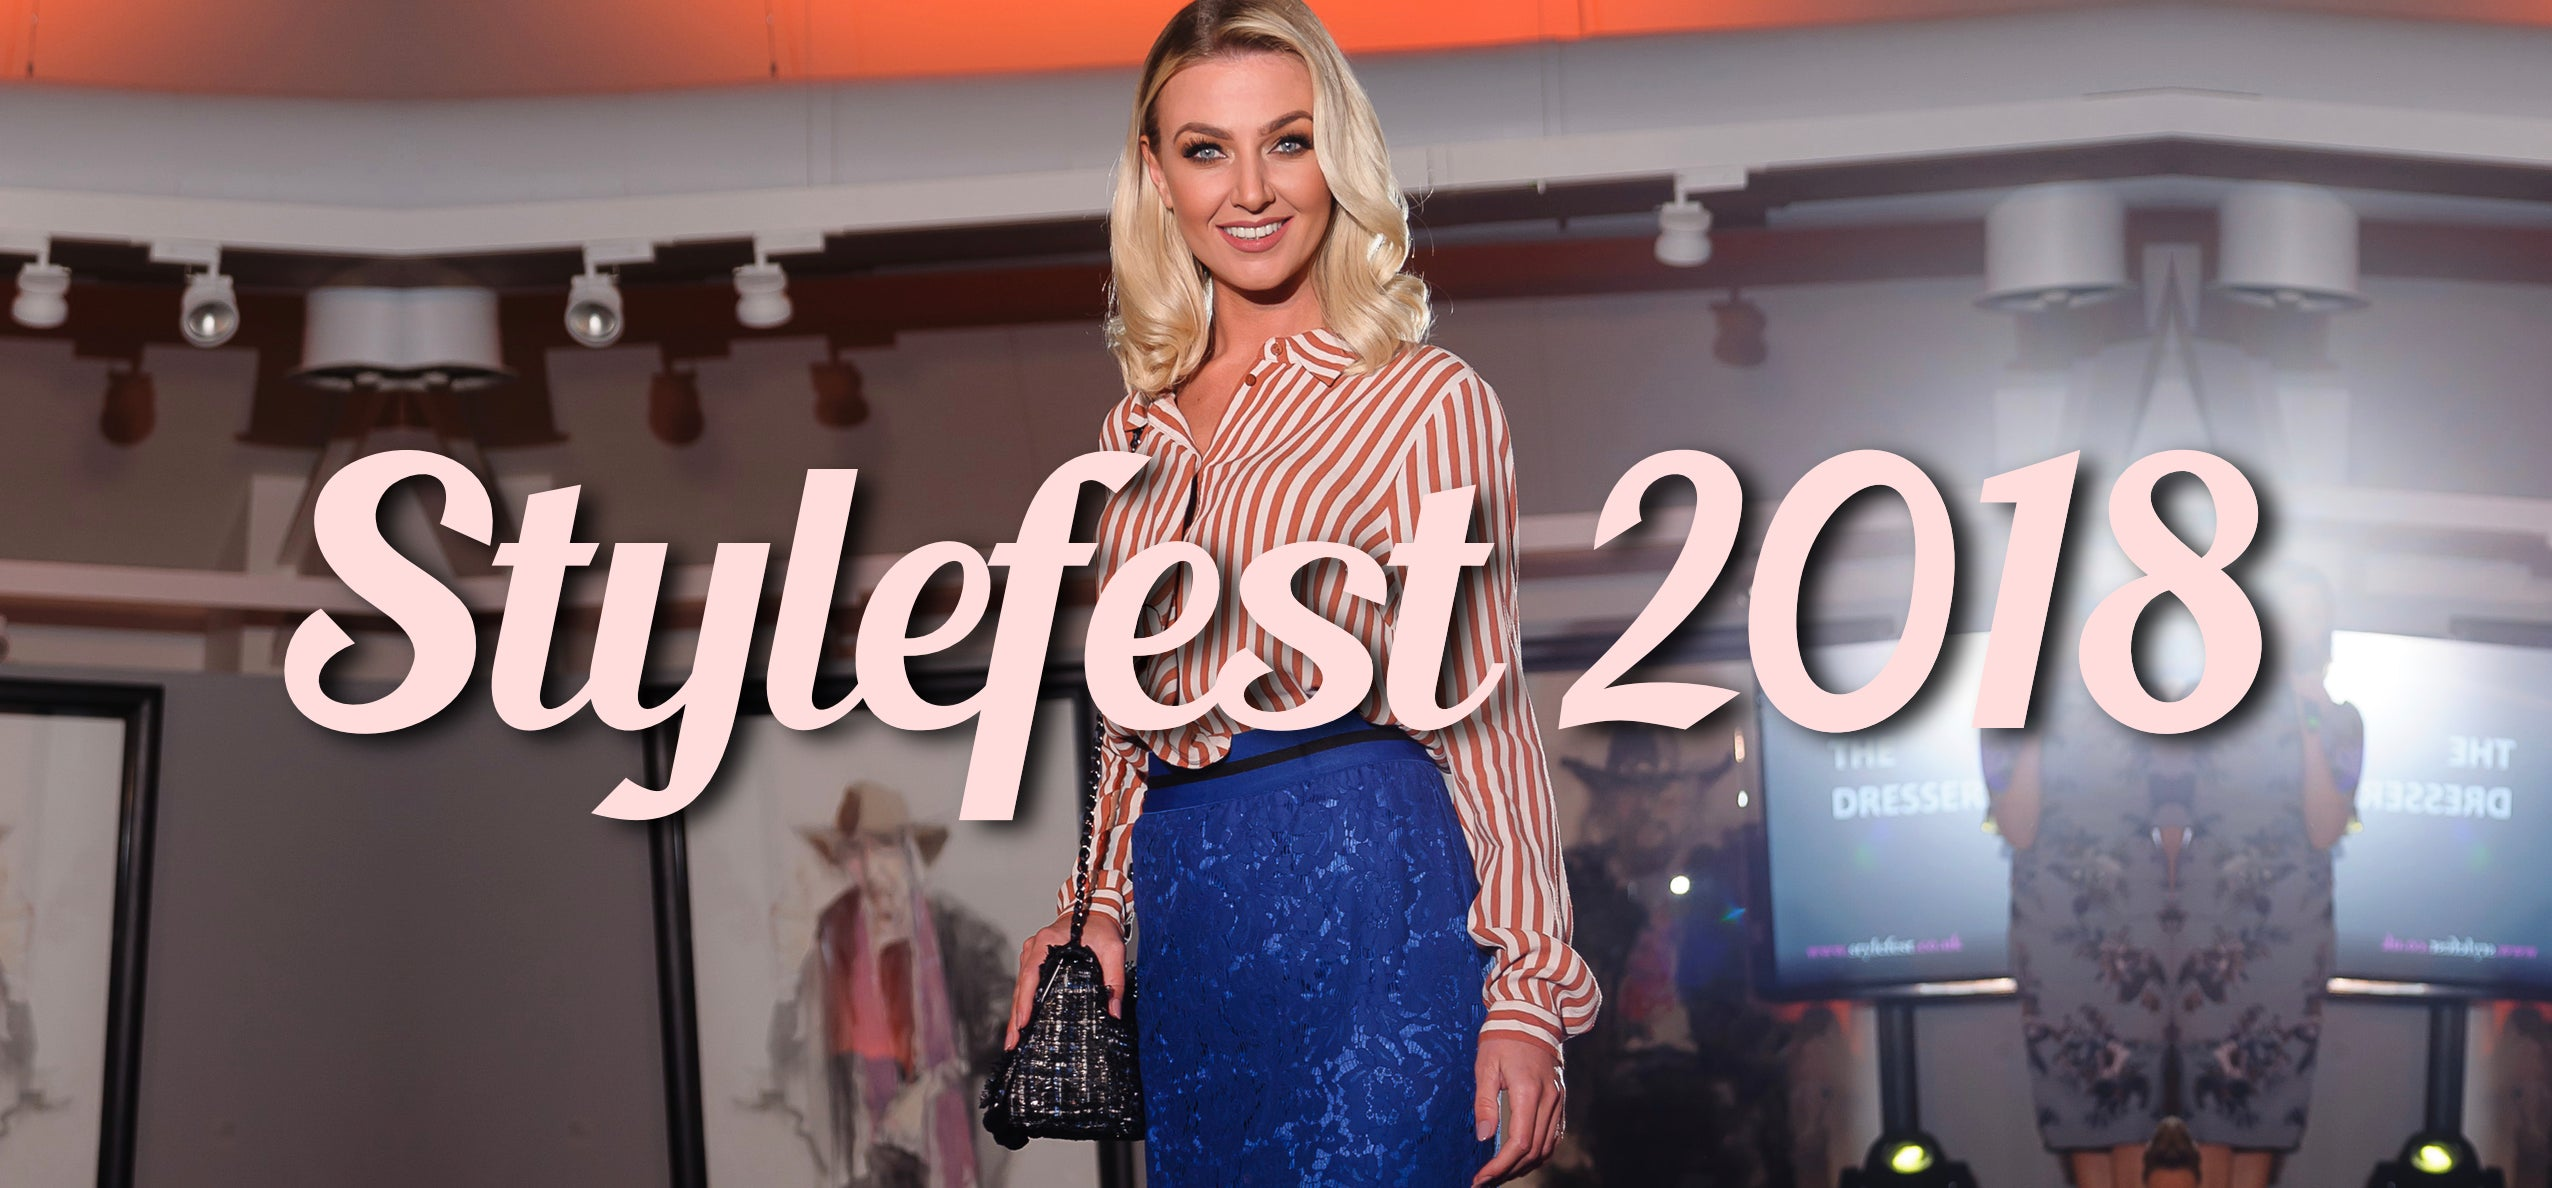 Stylefest | The Dresser Boutique Banbridge Northern Ireland